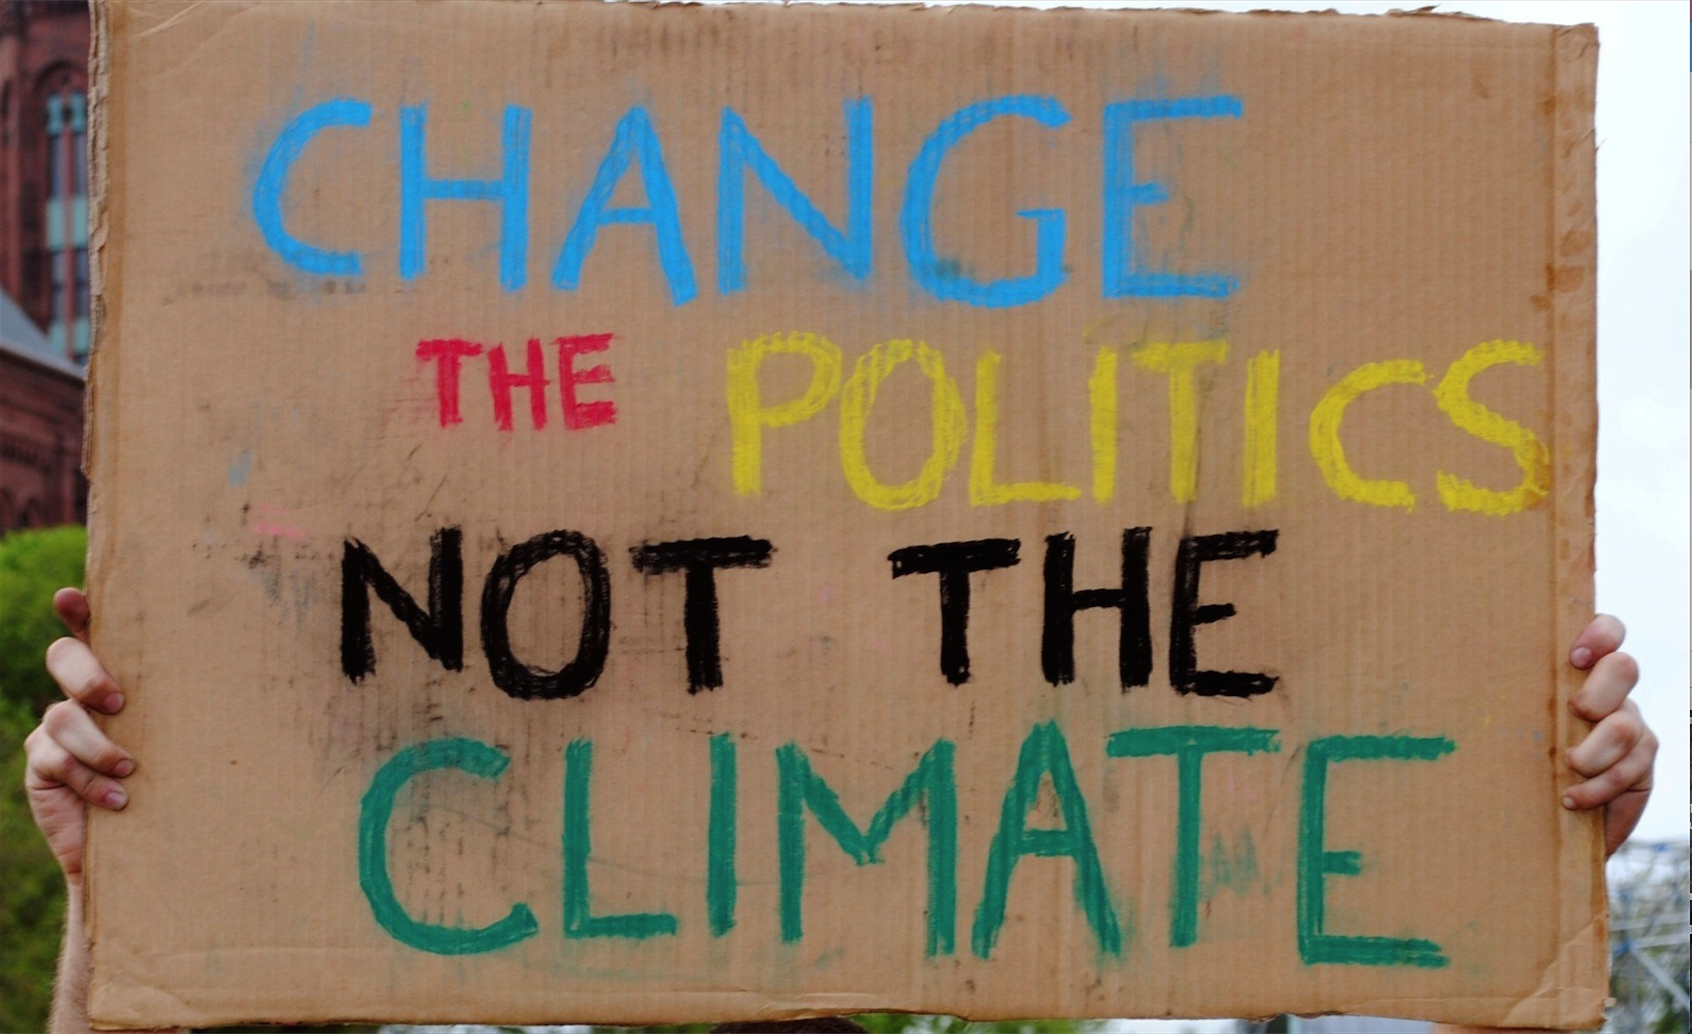 Cognitive science, not climate science, may hold the clue for how to engage the public to recognize and address the threats posed by climate change.